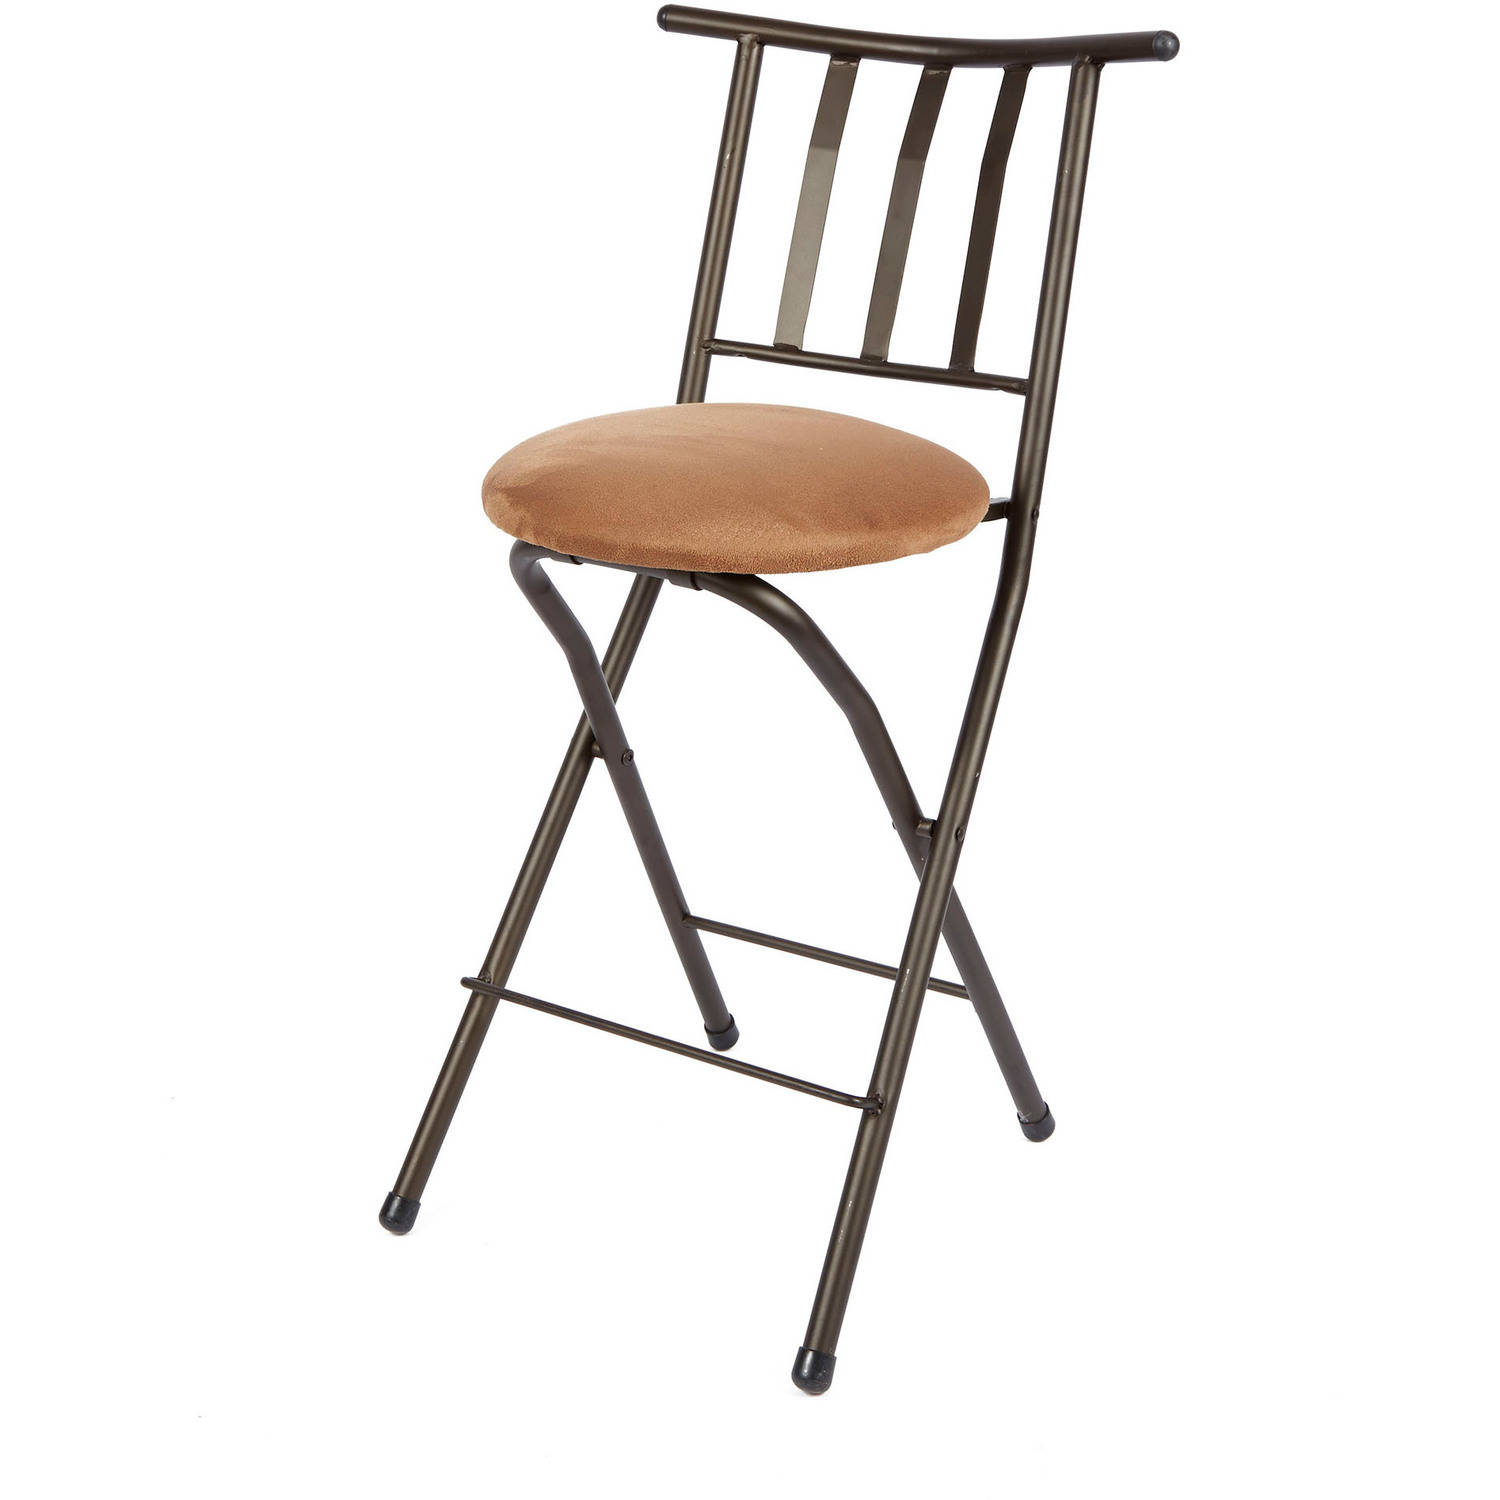 "Mainstays 24"" Slat-Back Counter Height Barstool, Beige"